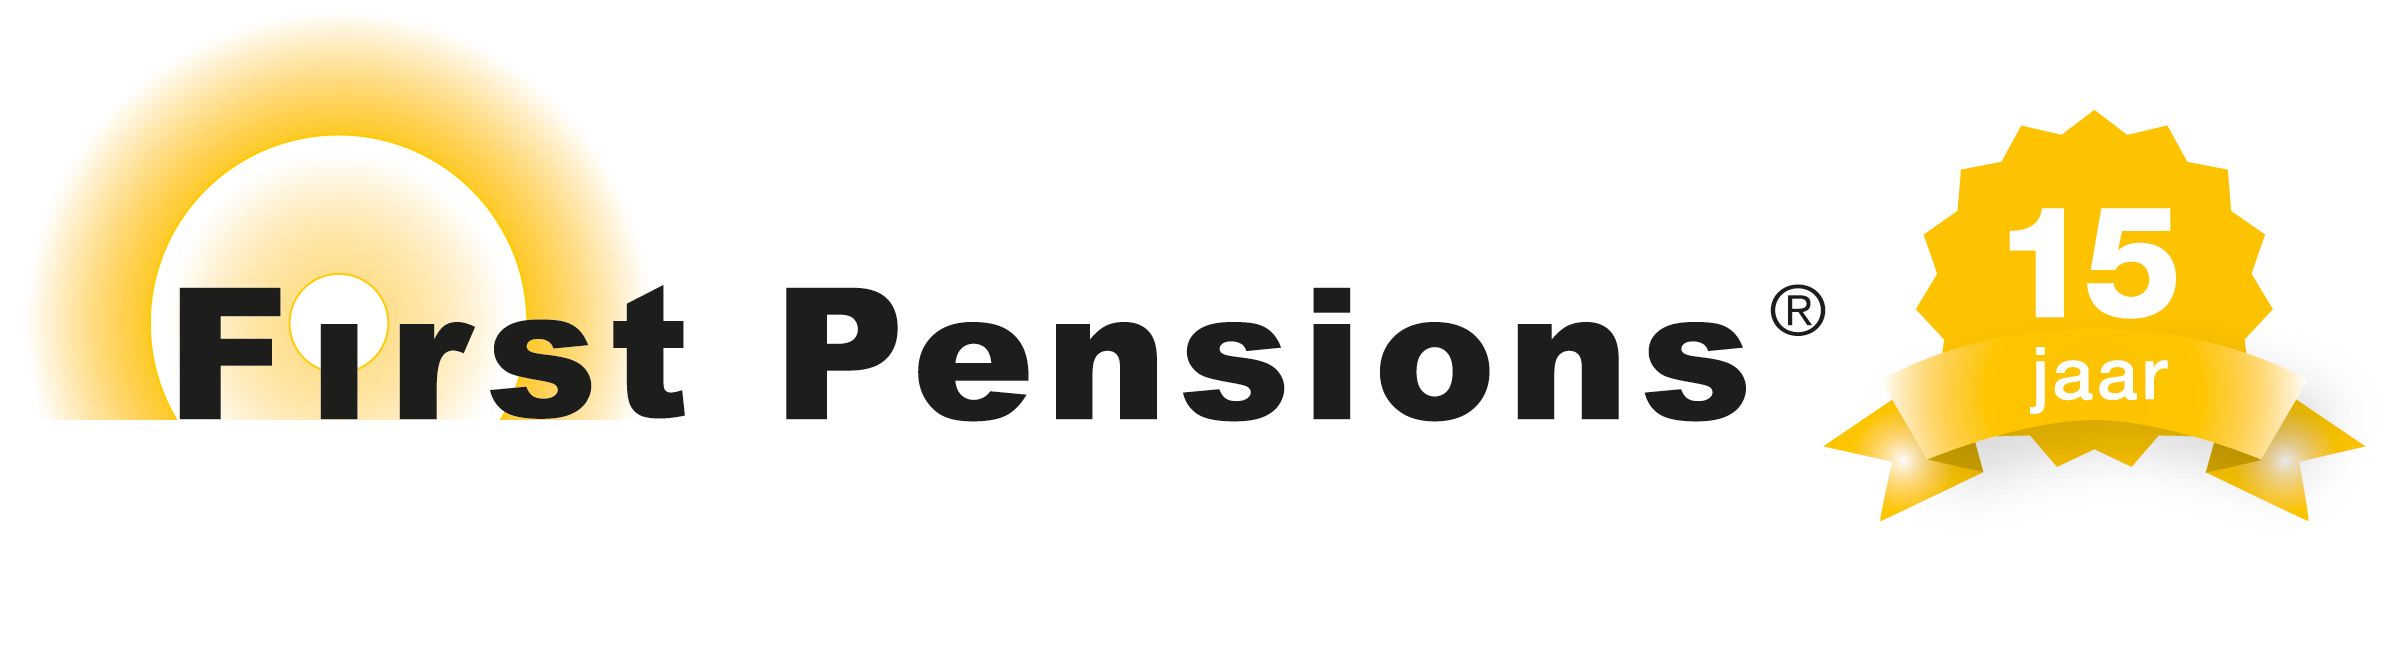 First Pensions